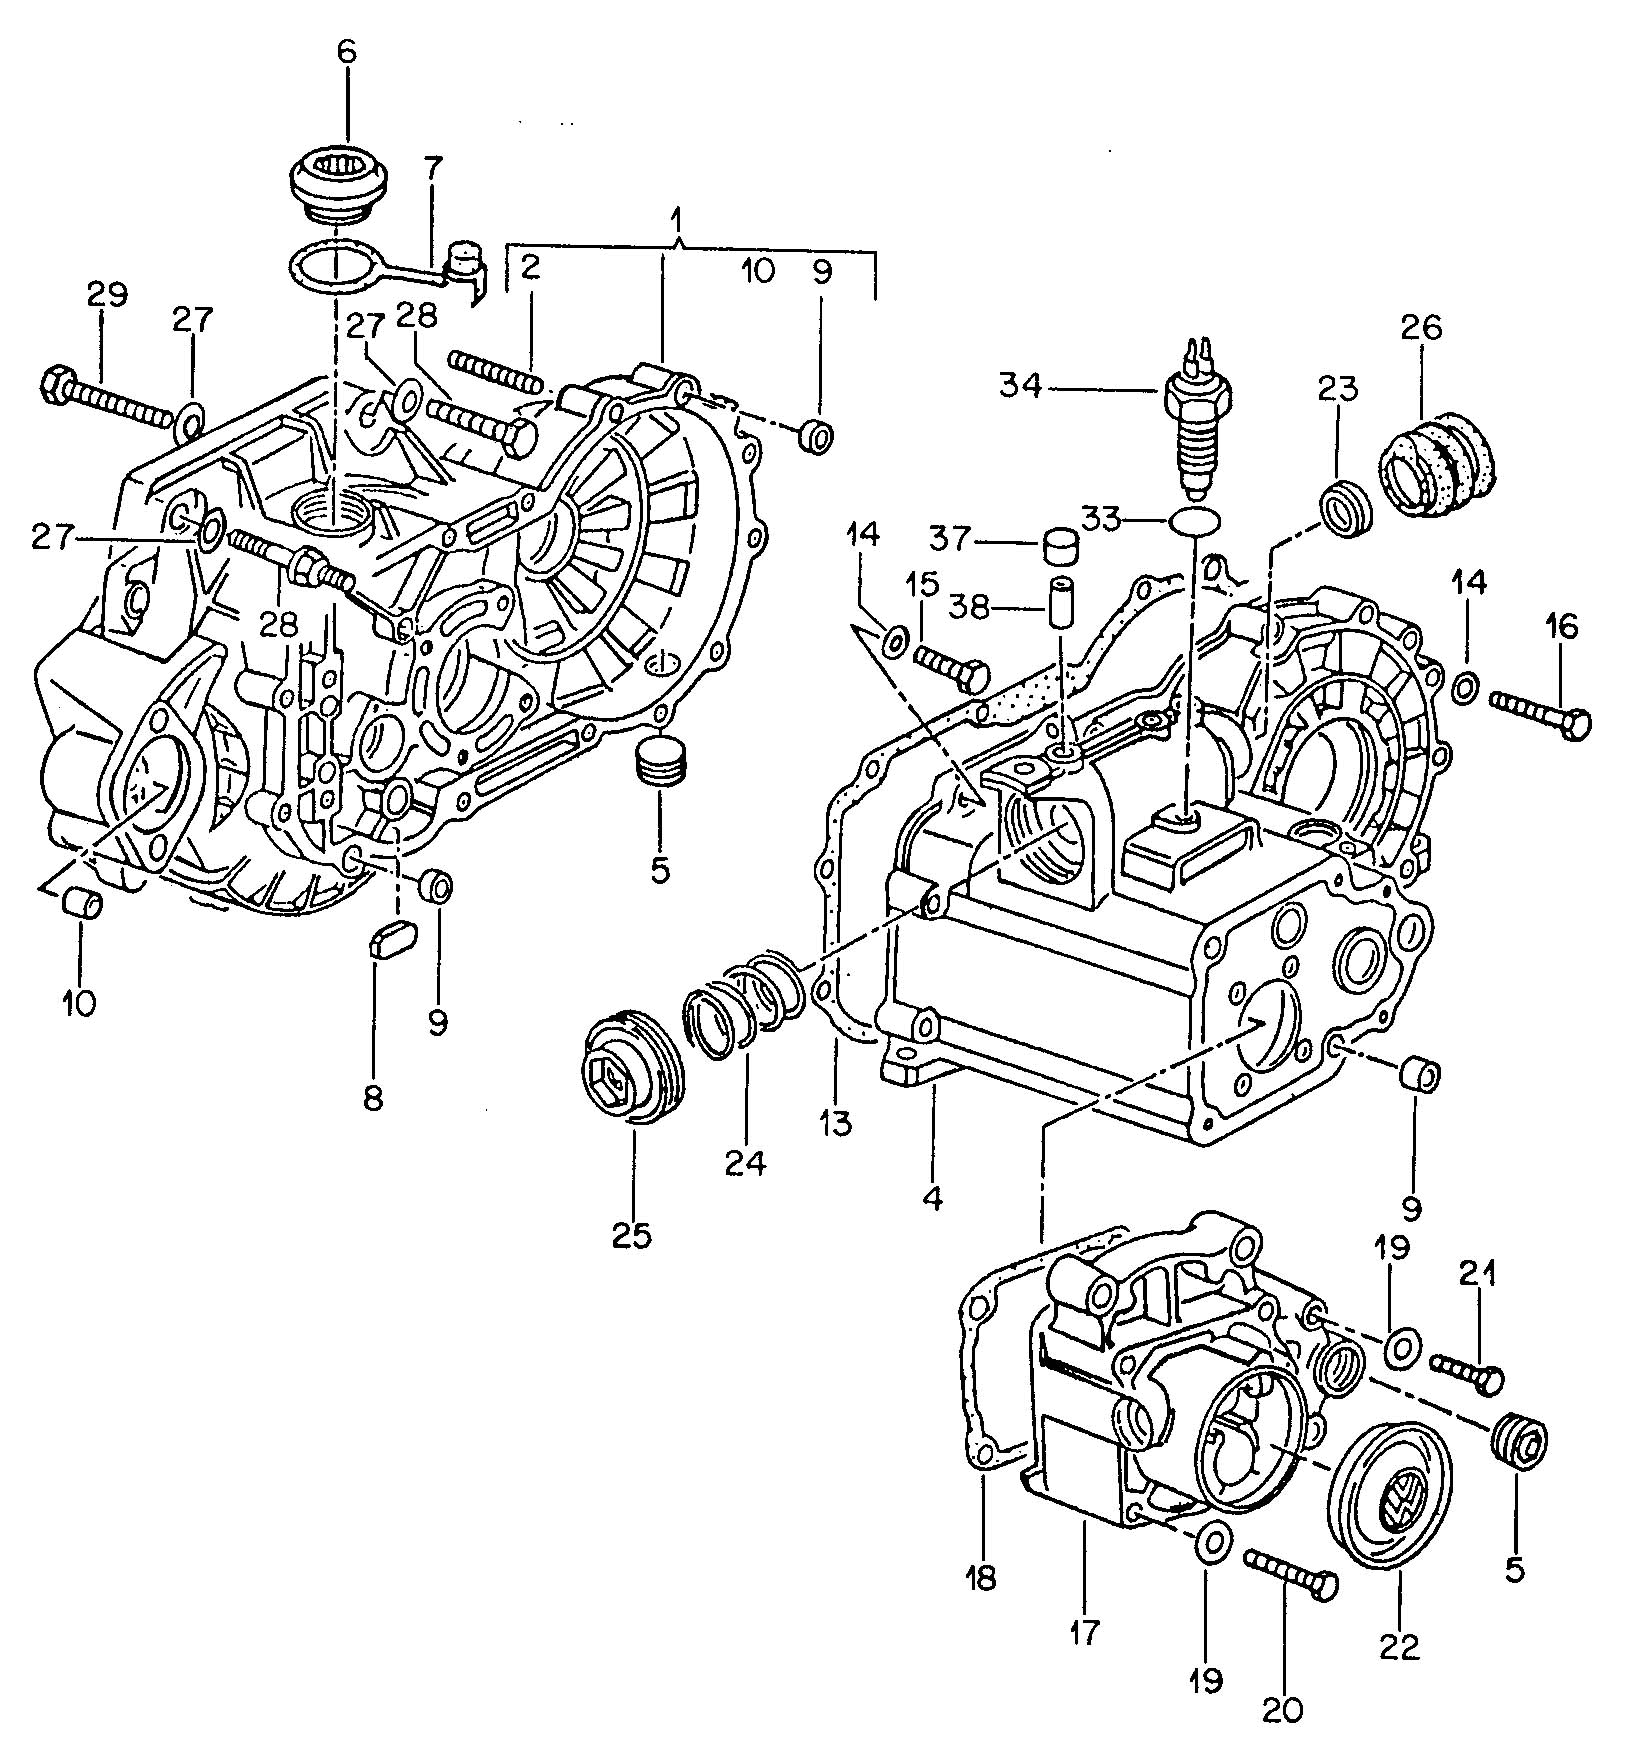 [DIAGRAM] 1999 Vw Jetta Manual Transmission Diagram FULL